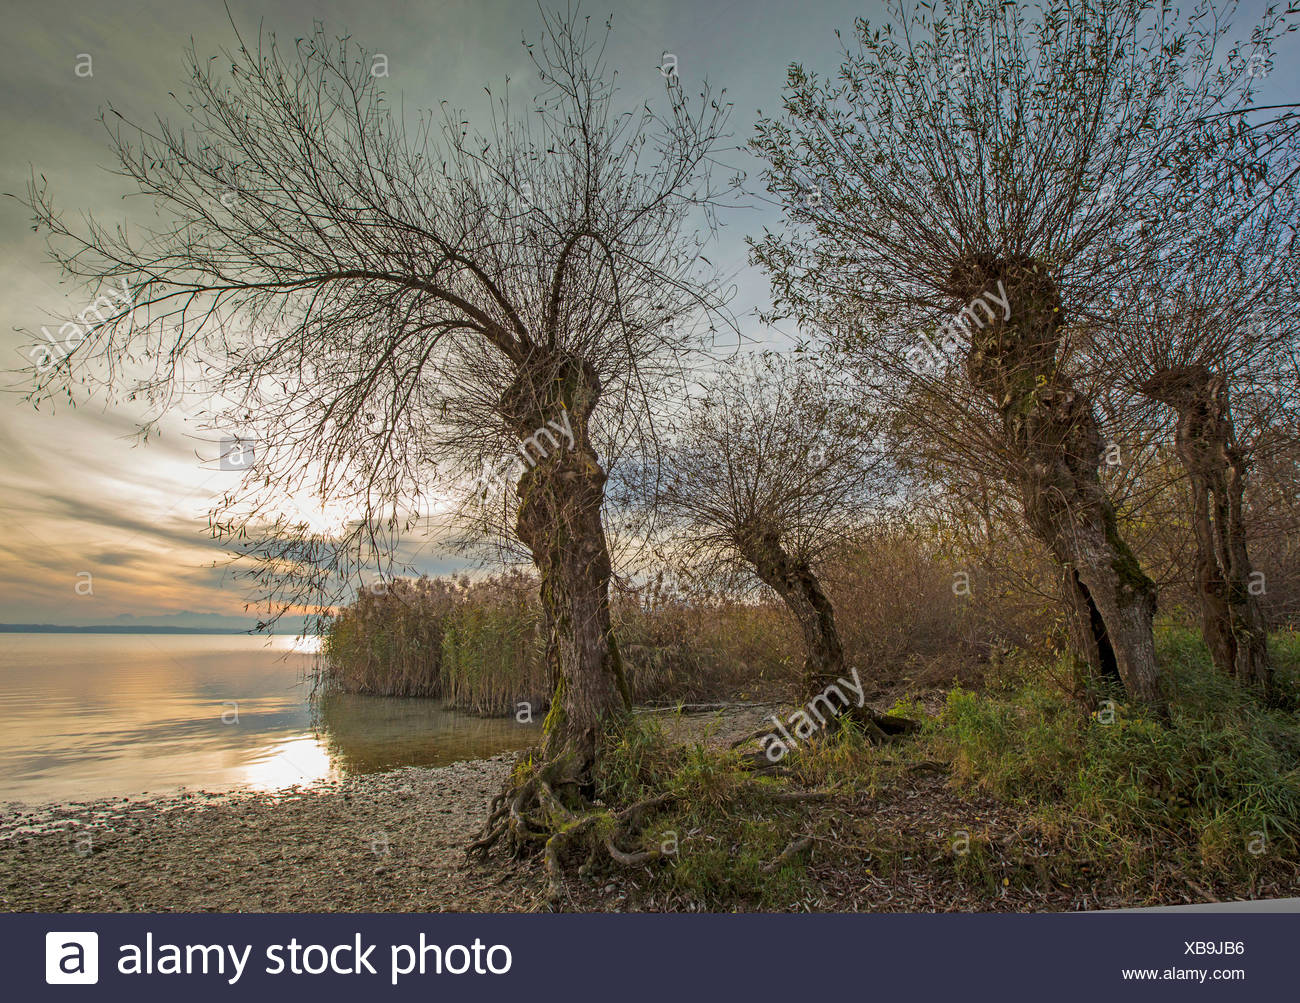 White willow (Salix alba), old pollarded willows at lake shore, Germany, Bavaria, Lake Chiemsee - Stock Image